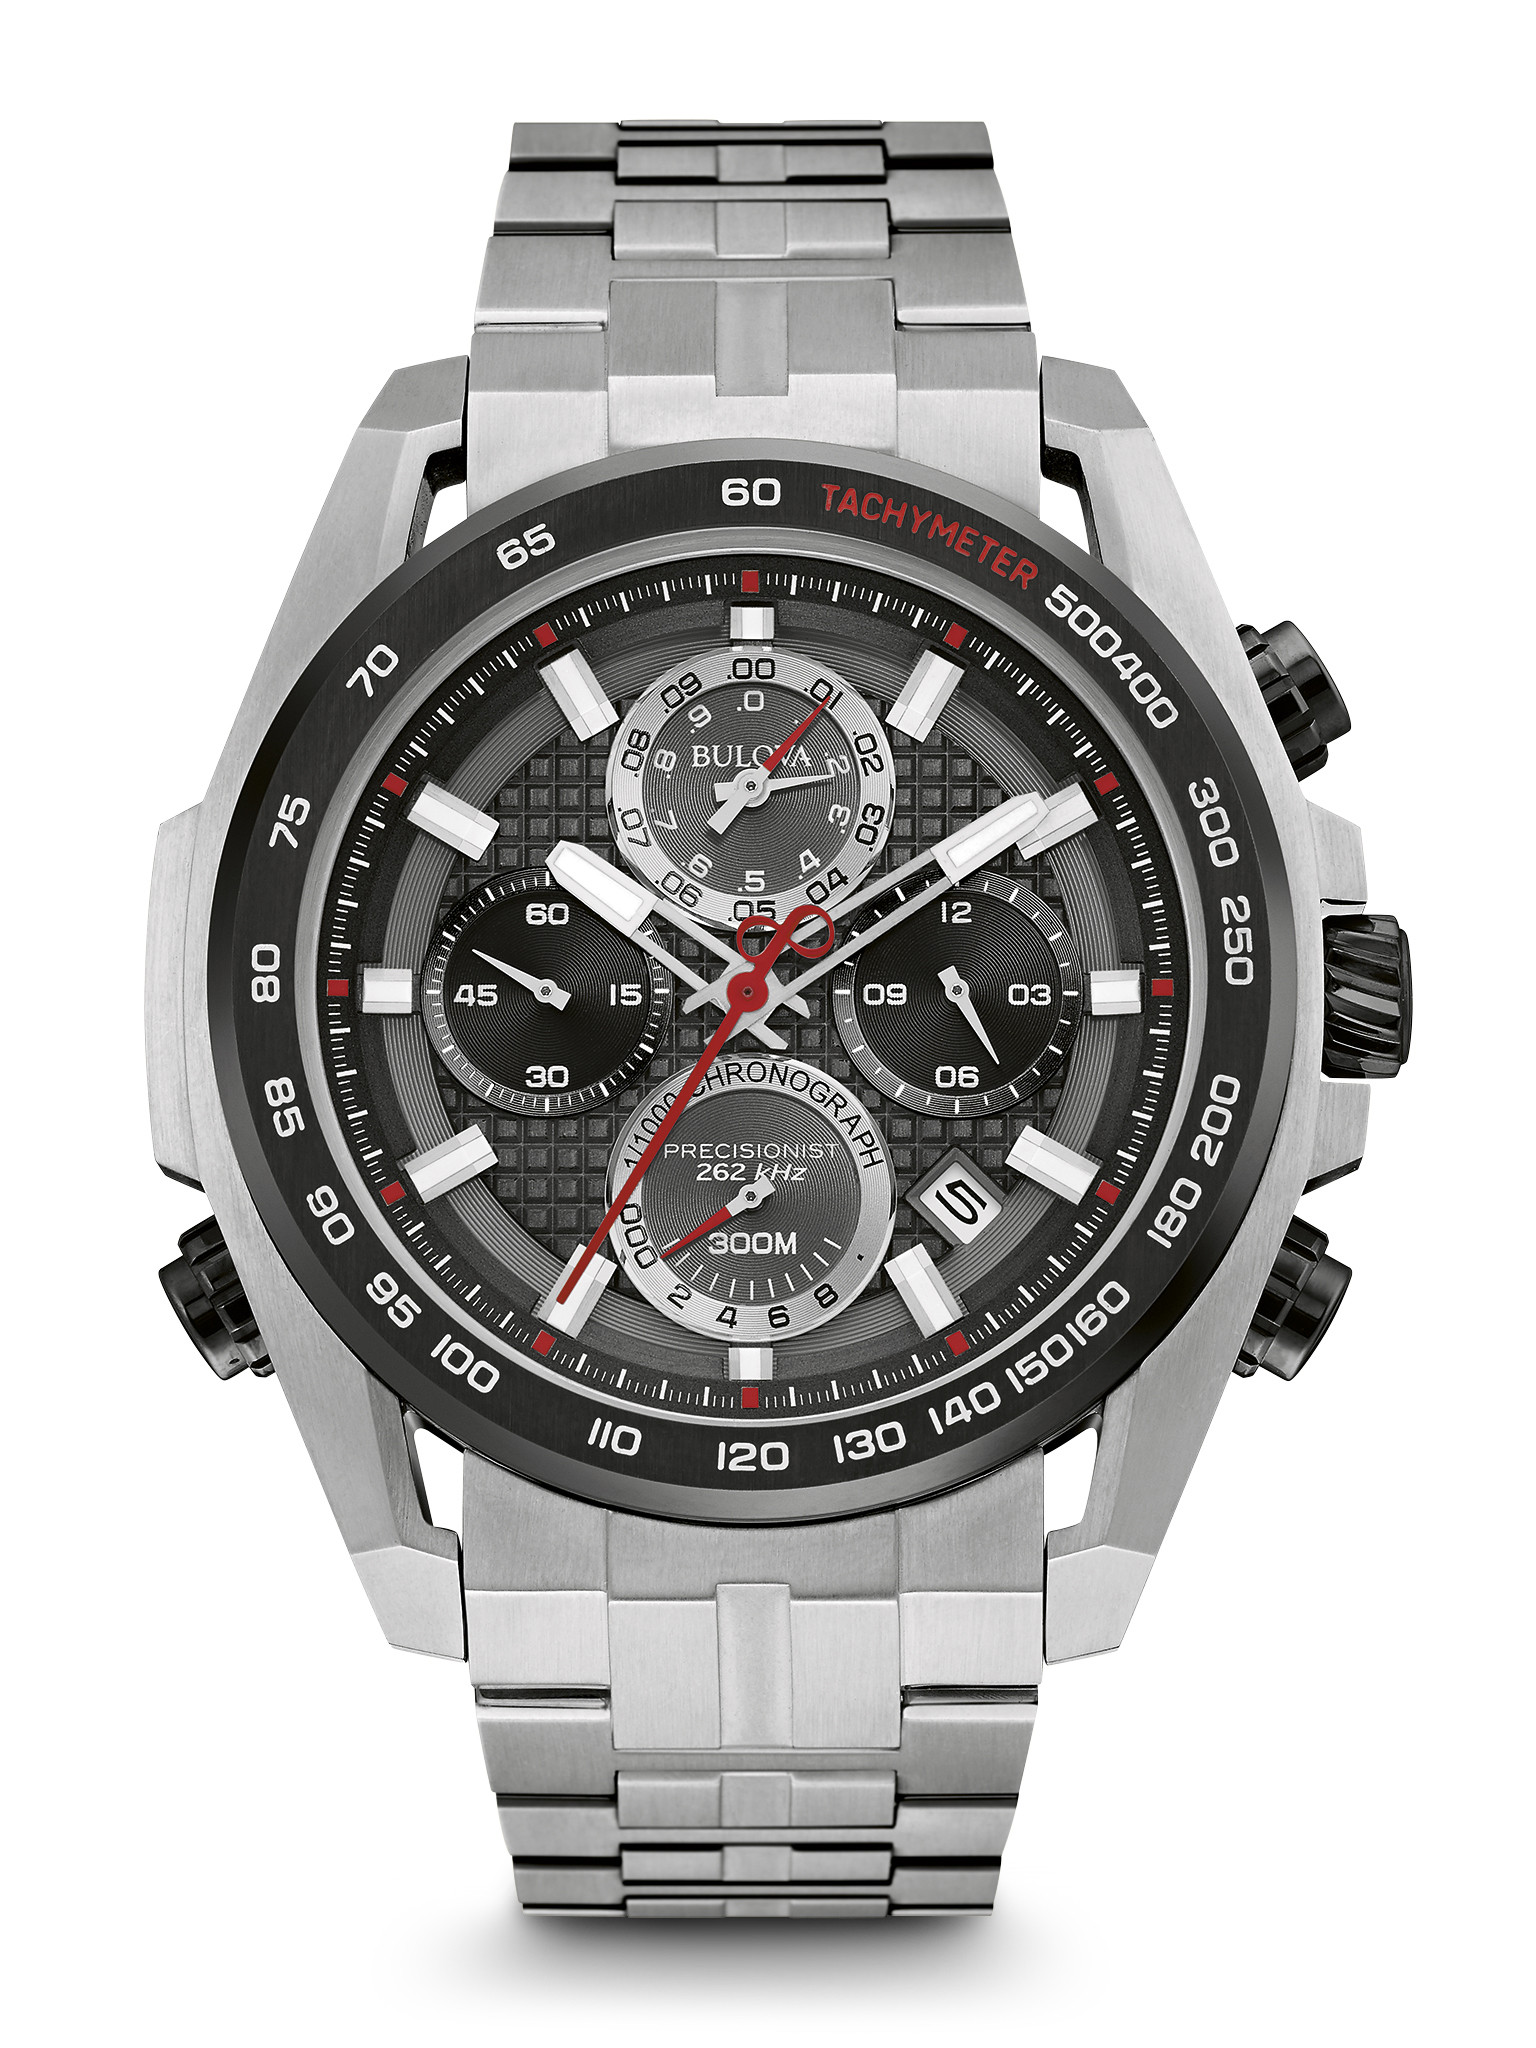 Bulova Men S Precisionist Chronograph Watch 98b270 Long